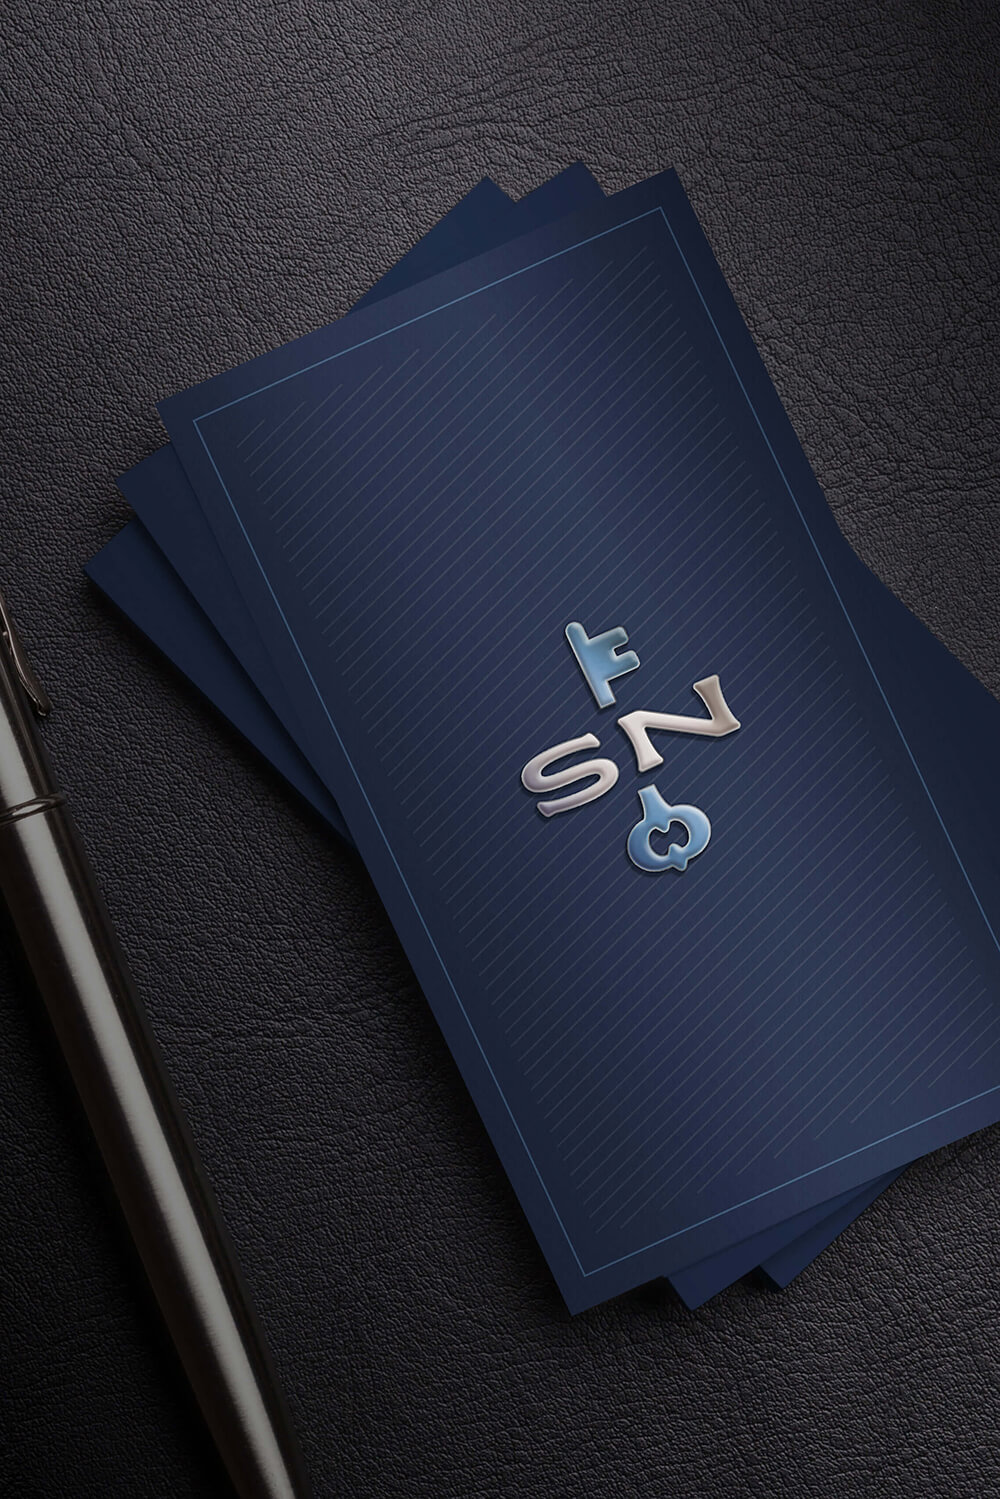 sean-neary-business-card-mobile